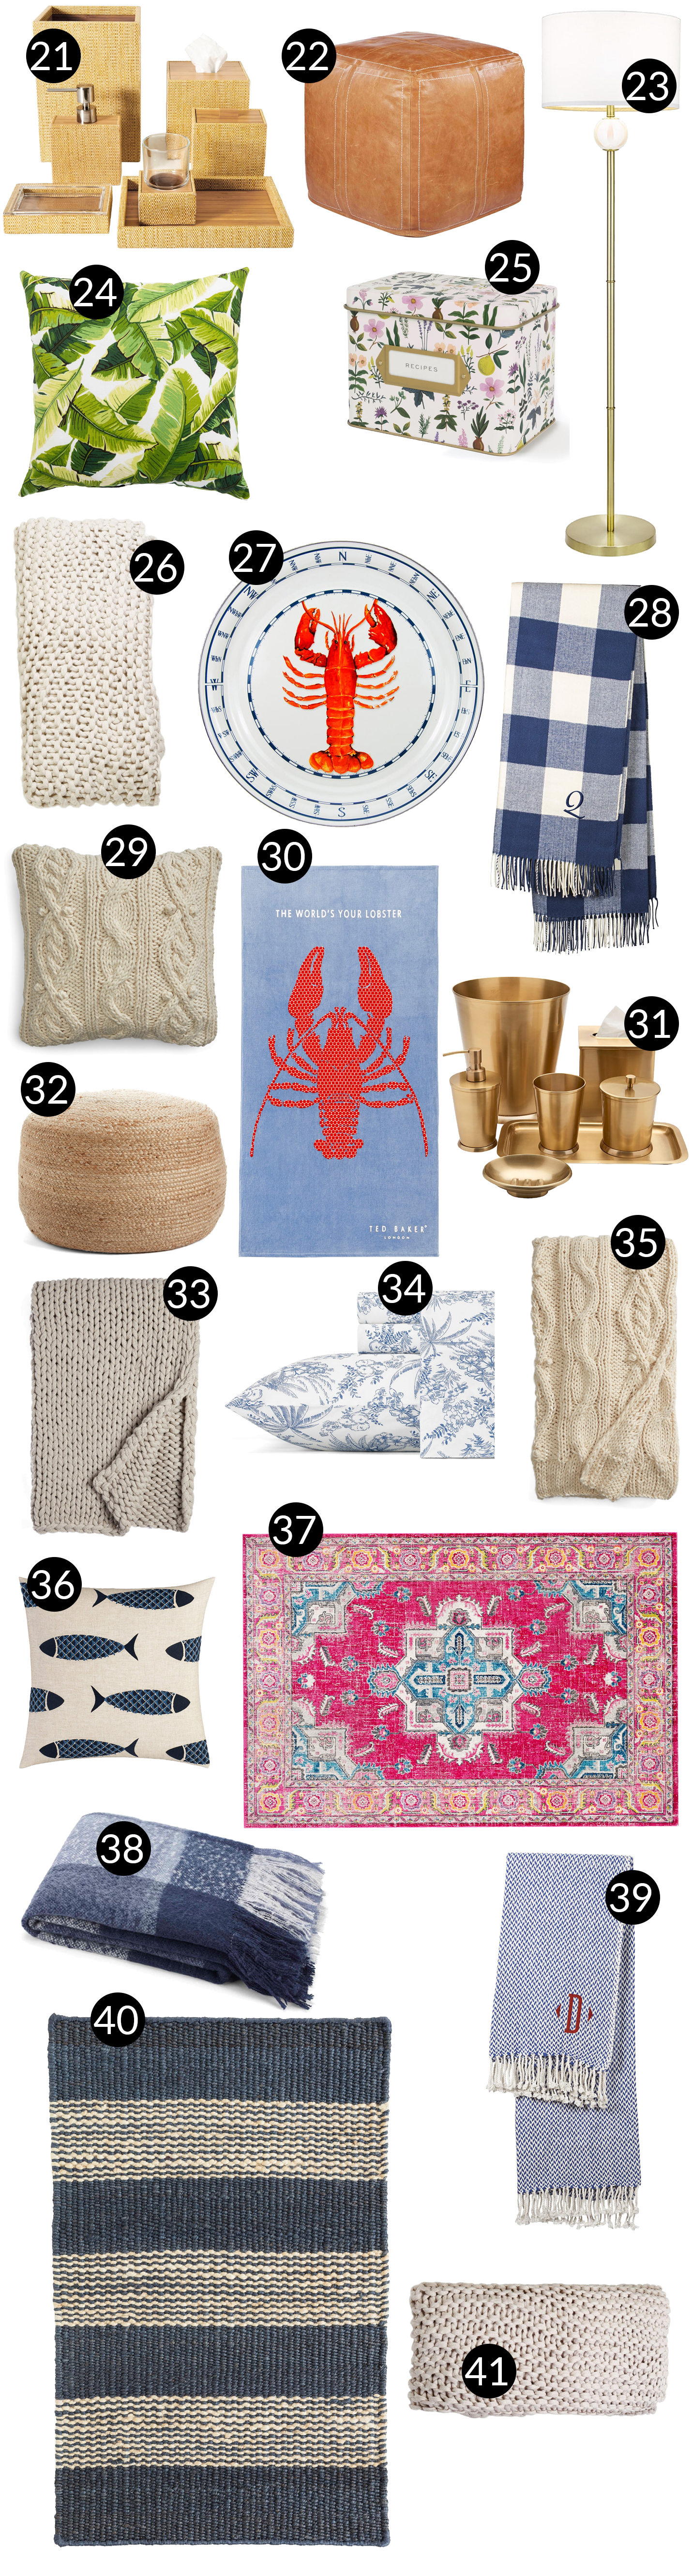 LIVE: Nordstrom Anniversary Sale home 2